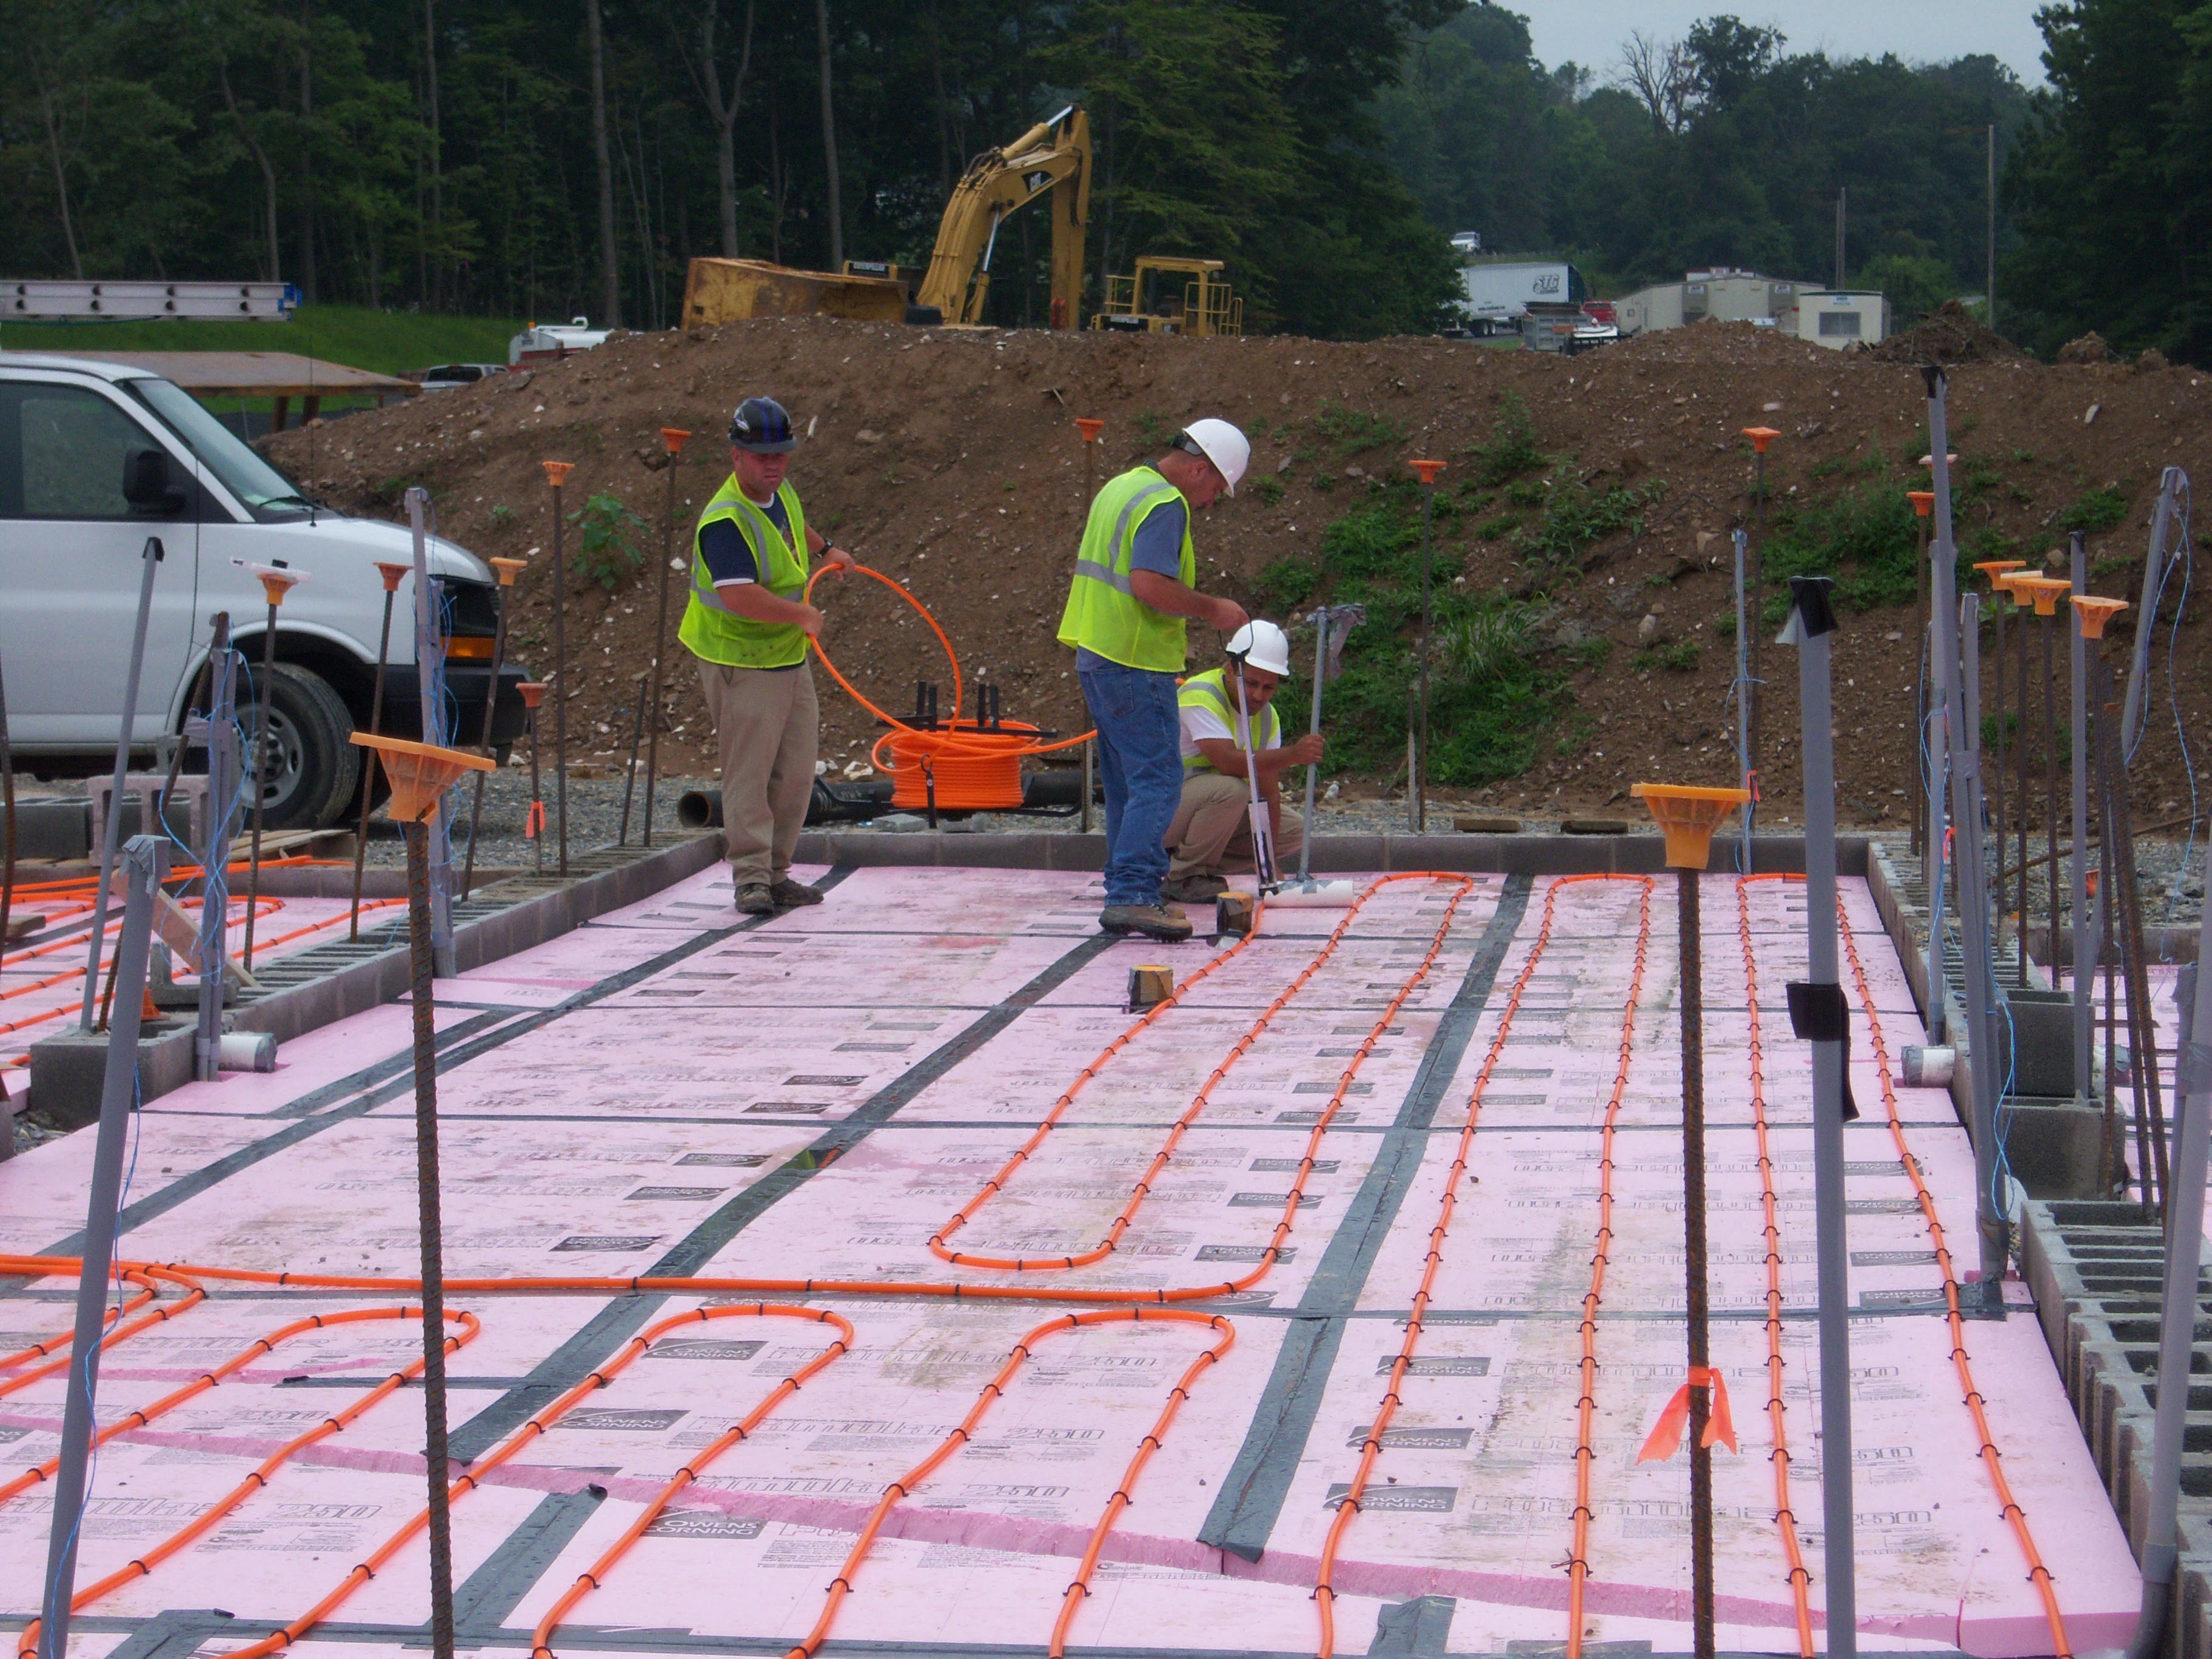 men working on new construction project